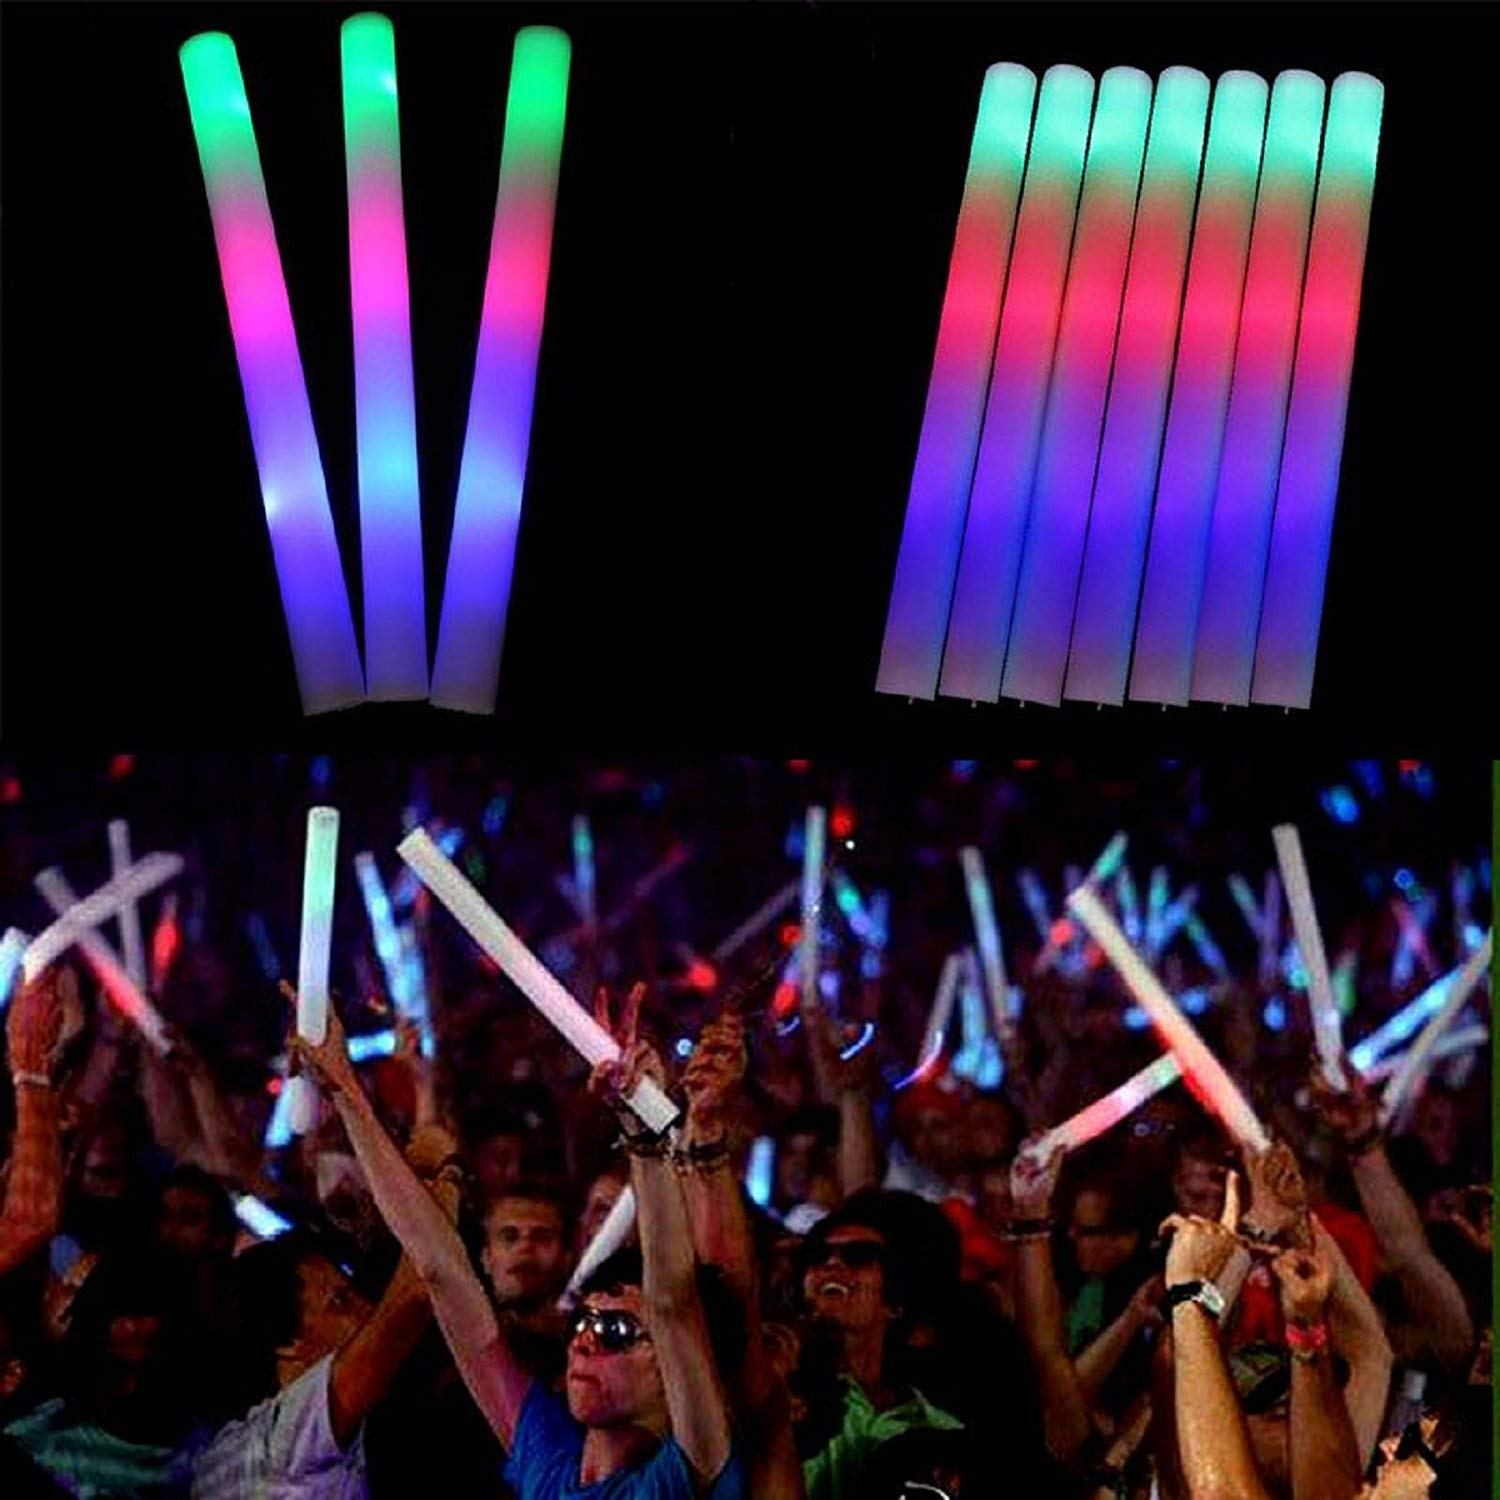 OUYAWEI 15PCS LED Colorful Flashing Foam Glow Stick Sponge Pretty Light Stick for Party Concert Halloween Wedding Christmas